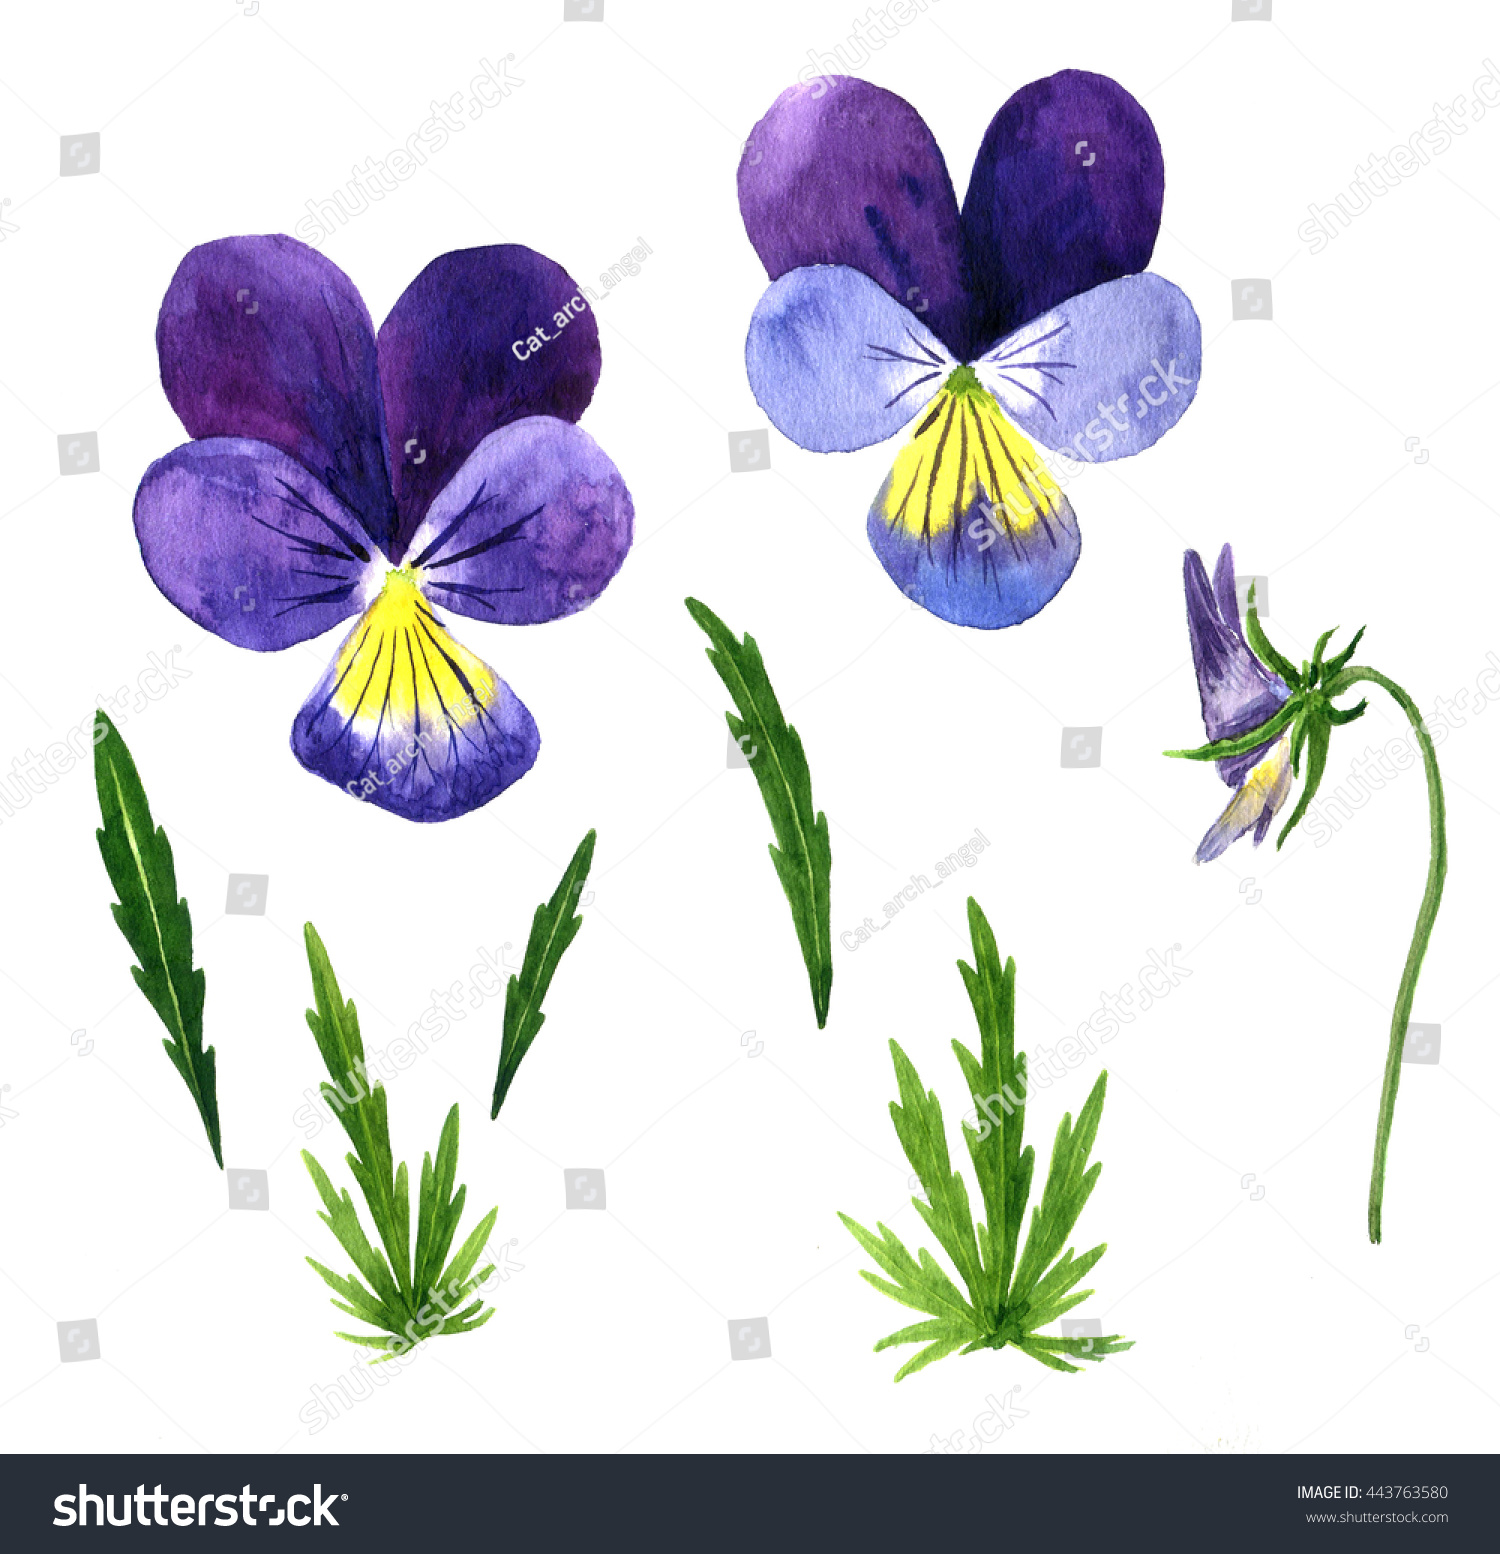 ... Drawing Set of watercolor drawing violet flowers,buds and leaves